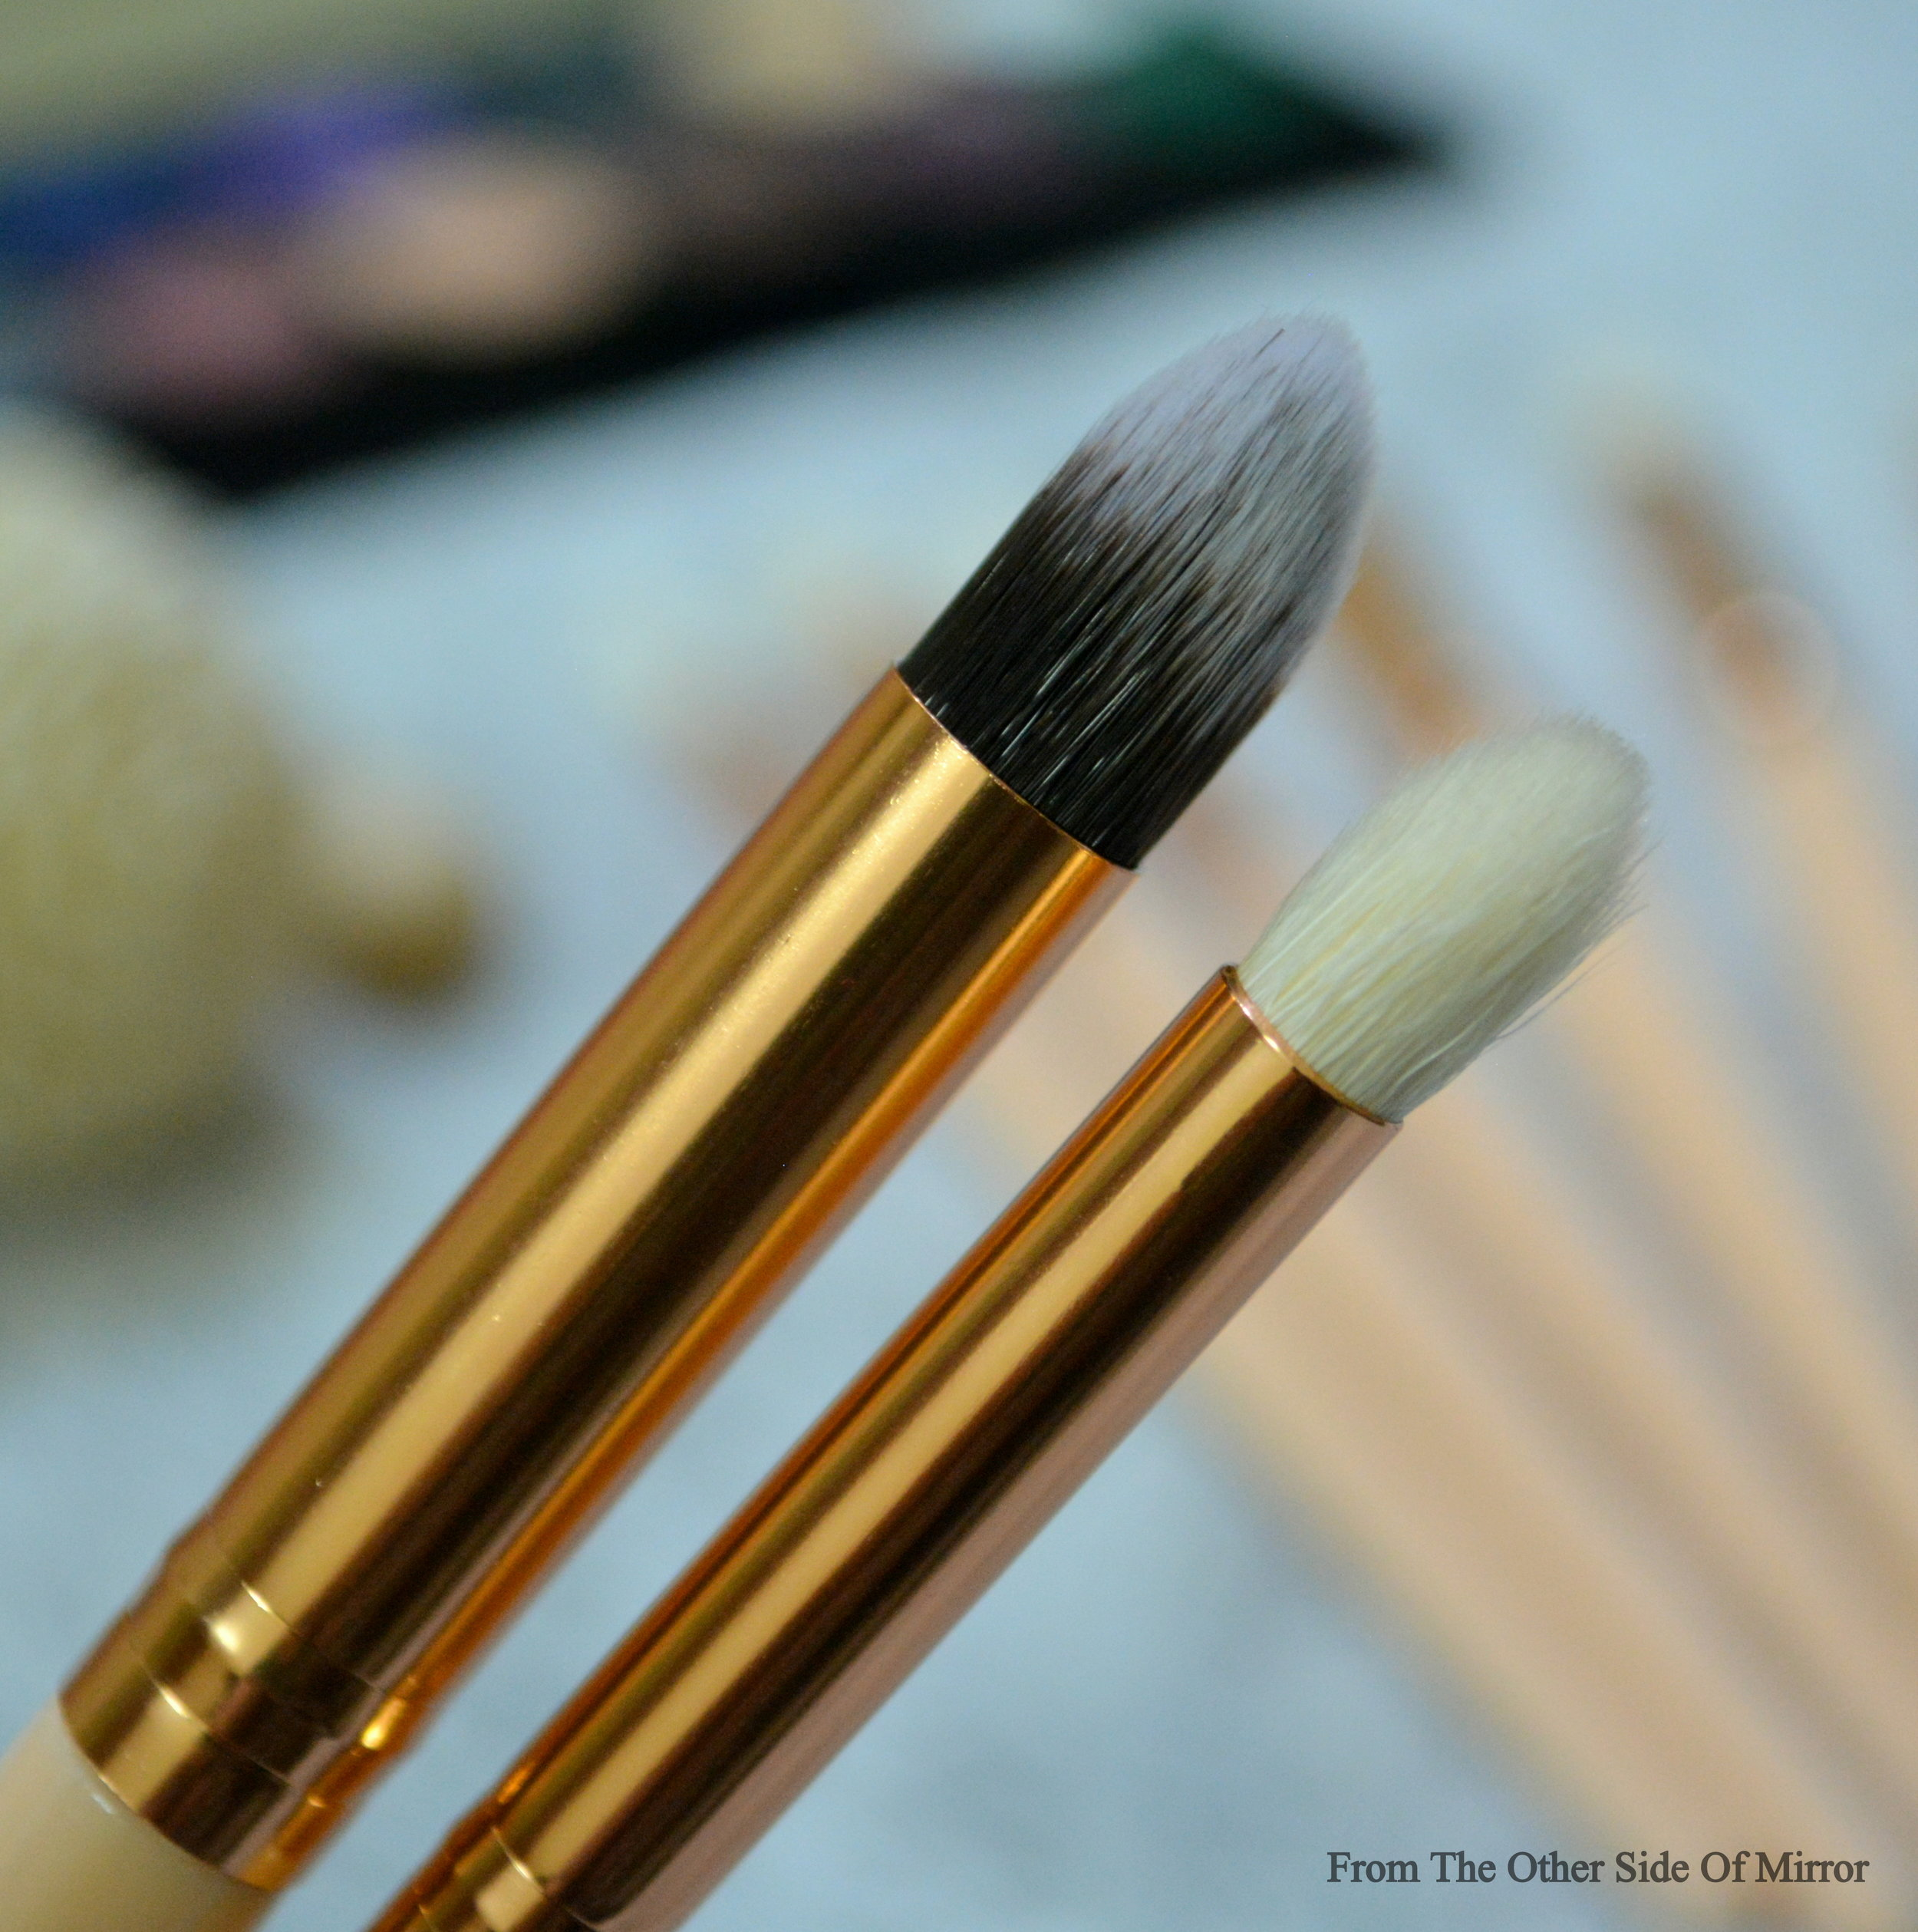 The Precison Brushes